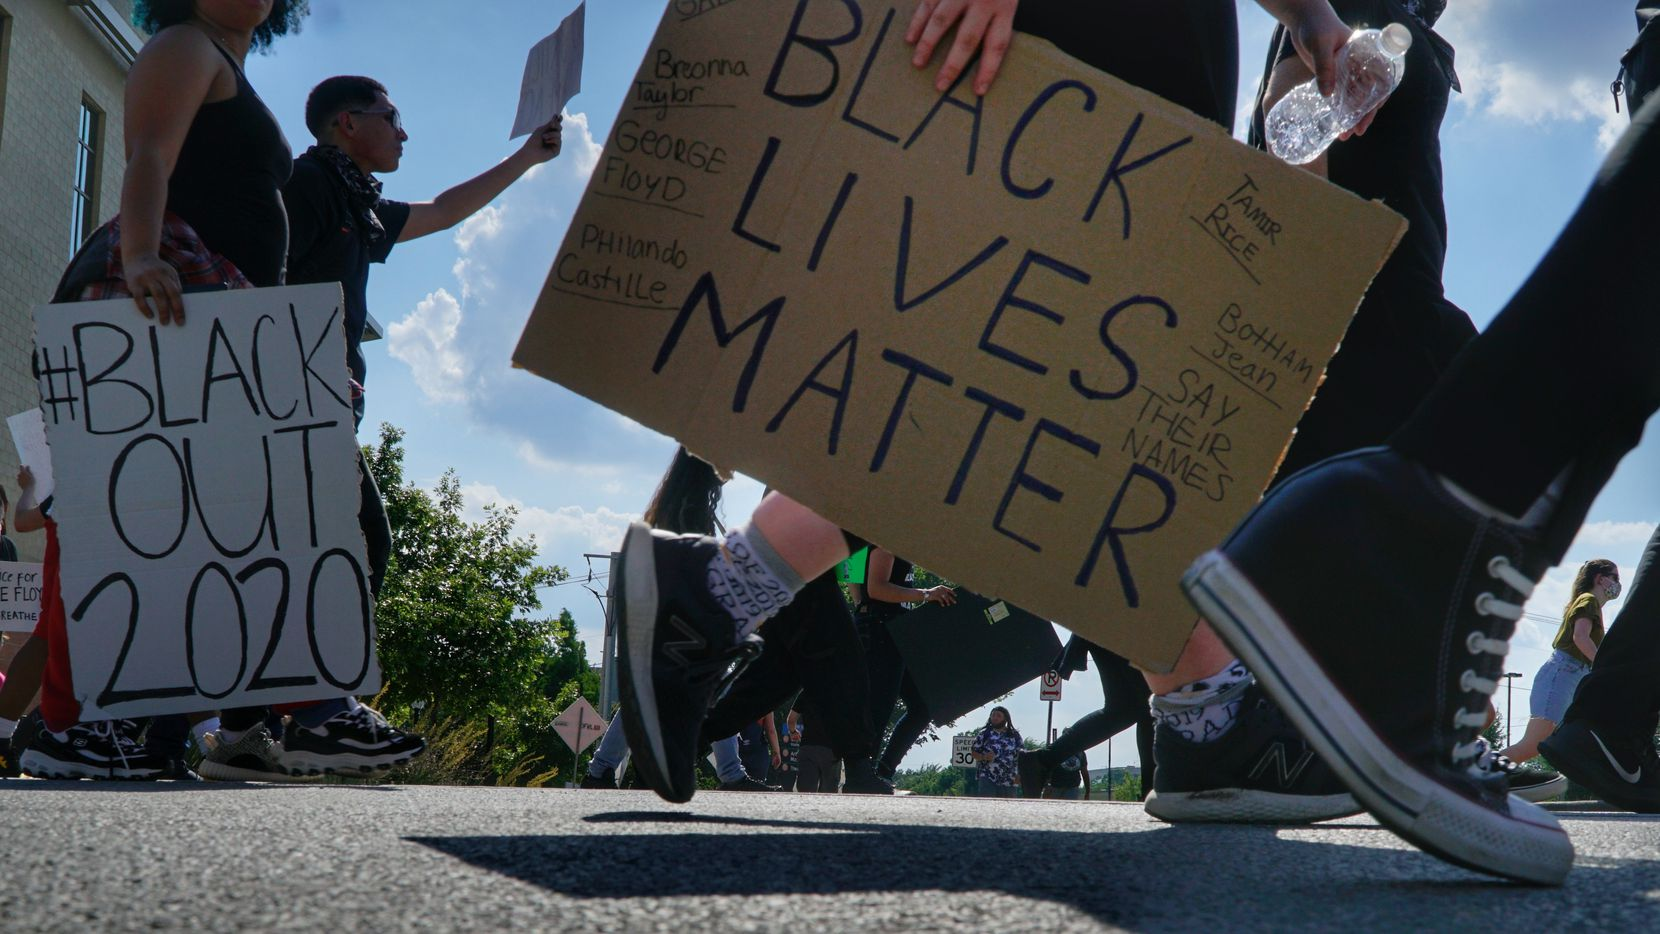 About 200 people protested in Arlington, Texas on Tuesday, June 2, 2020. The protest was to show solidarity in the midst of the latest killing of an African American man by police in Minnesota.